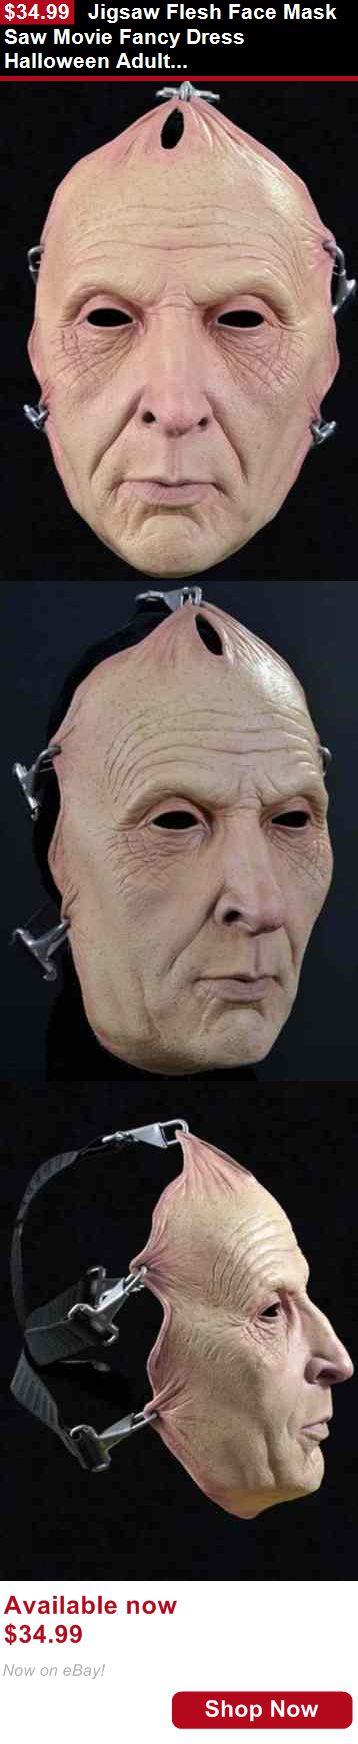 Costumes and reenactment attire: Jigsaw Flesh Face Mask Saw Movie Fancy Dress Halloween Adult Costume Accessory BUY IT NOW ONLY: $34.99